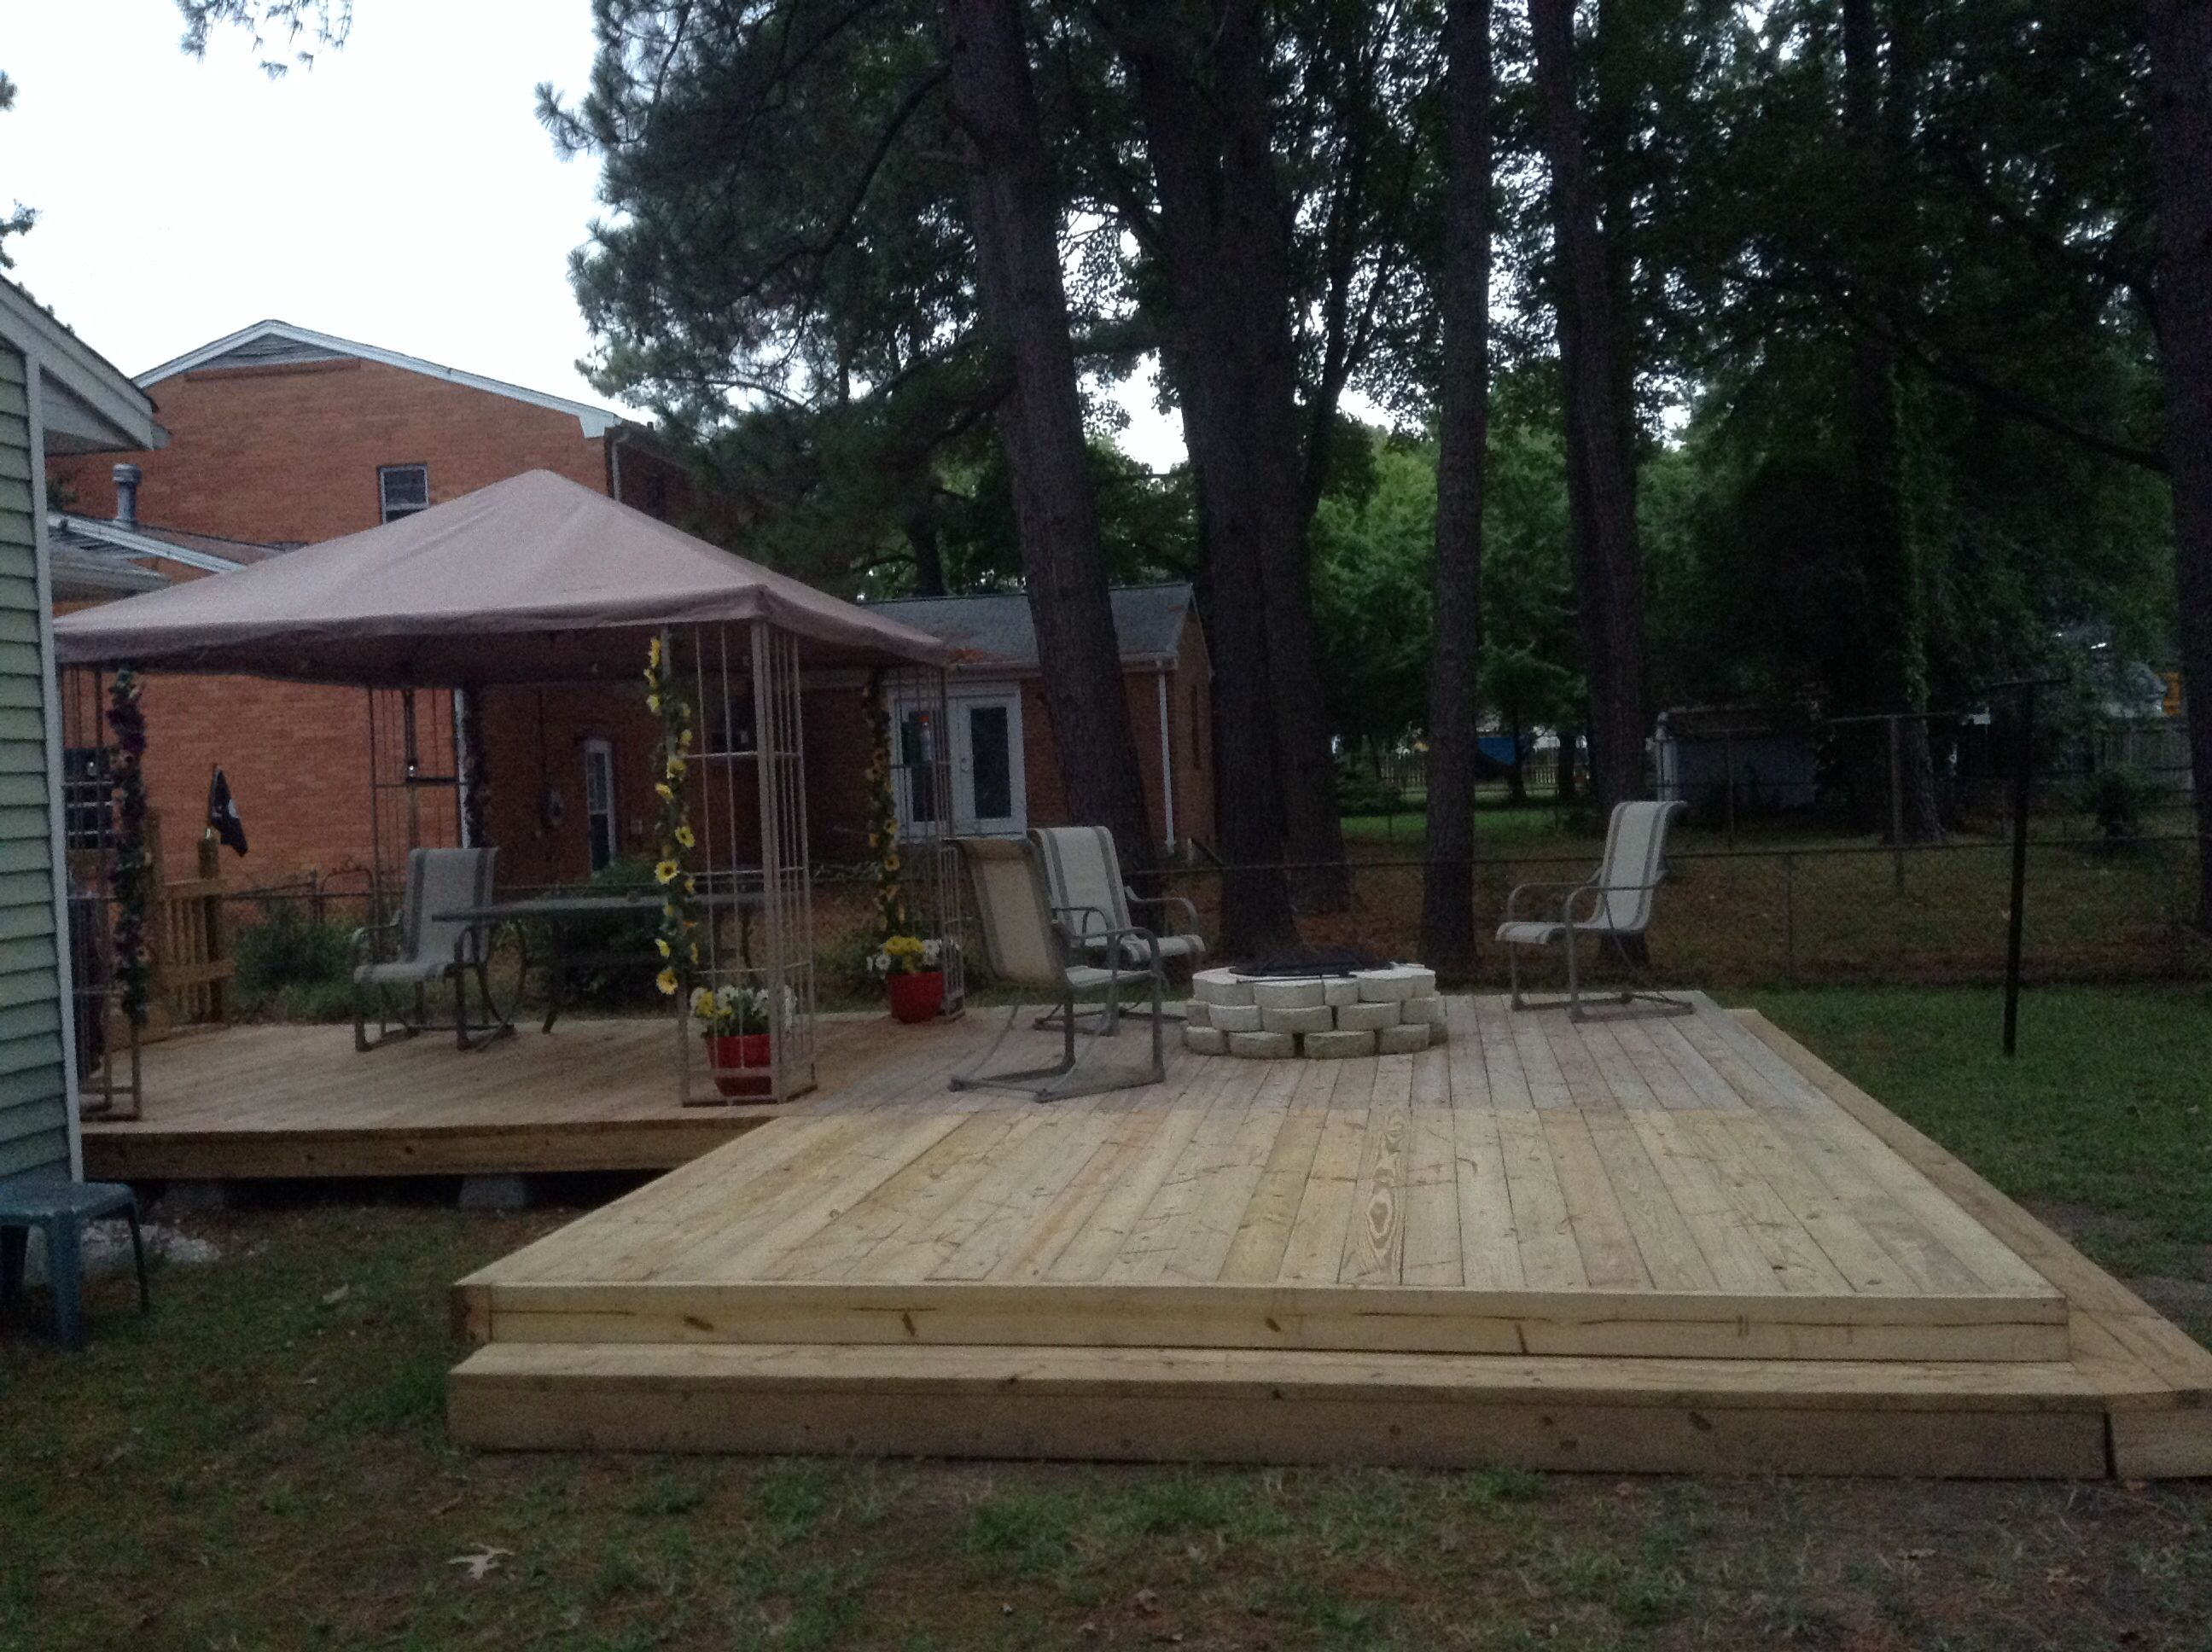 L Shaped Deck 12x12 Gazebo 12x12 Fire Pit L 12x12 Added For Pool In Summer L Shaped Deck Ideas Wood Deck Pergola